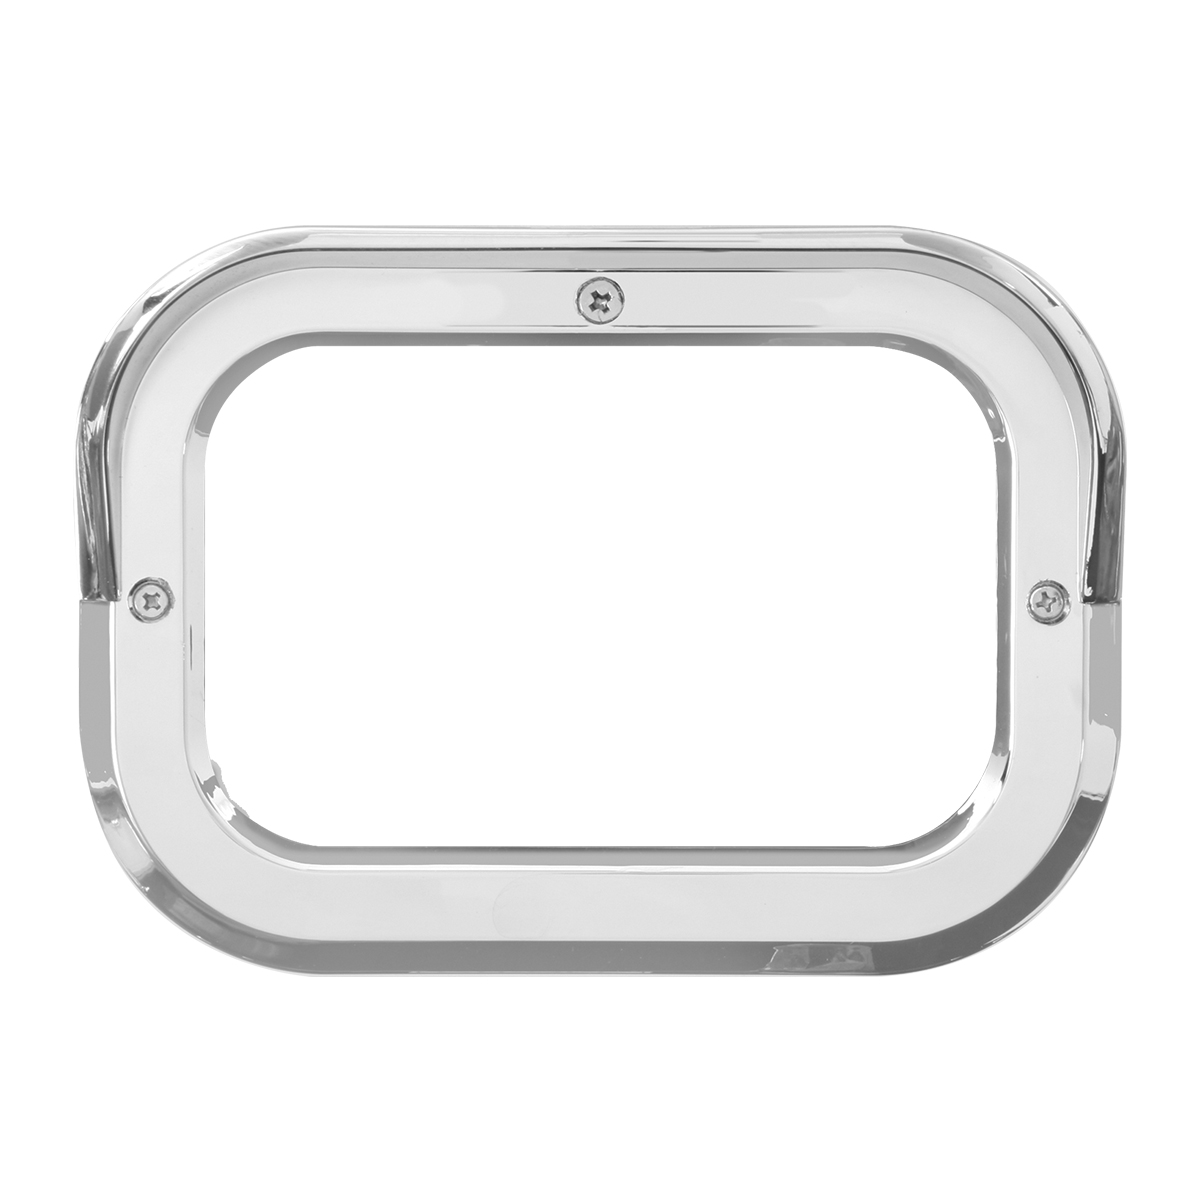 "80786 Chrome Plastic Grommet Cover w/ Visor for 5.25"" Large Rectangular Light"